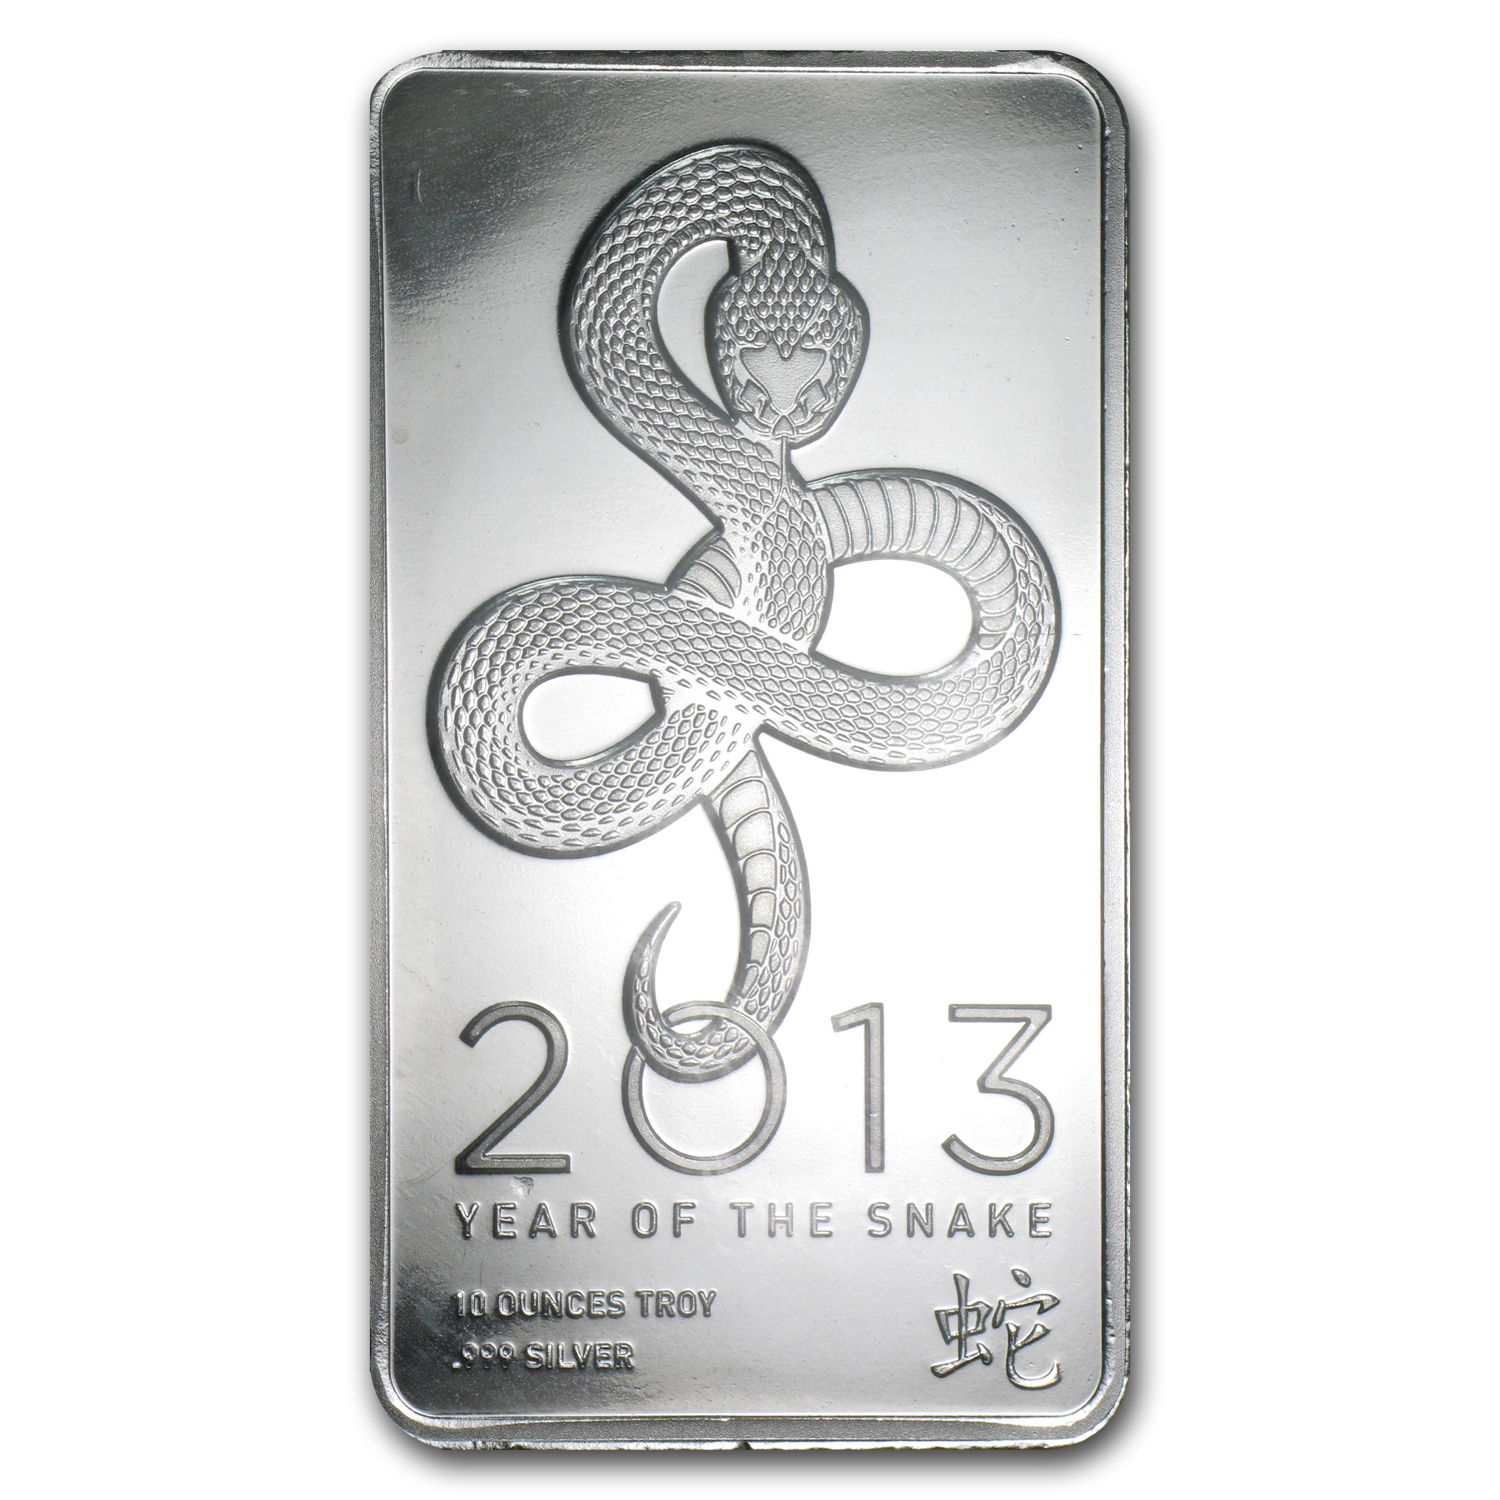 10 oz Silver Bars - 2013 Year of the Snake